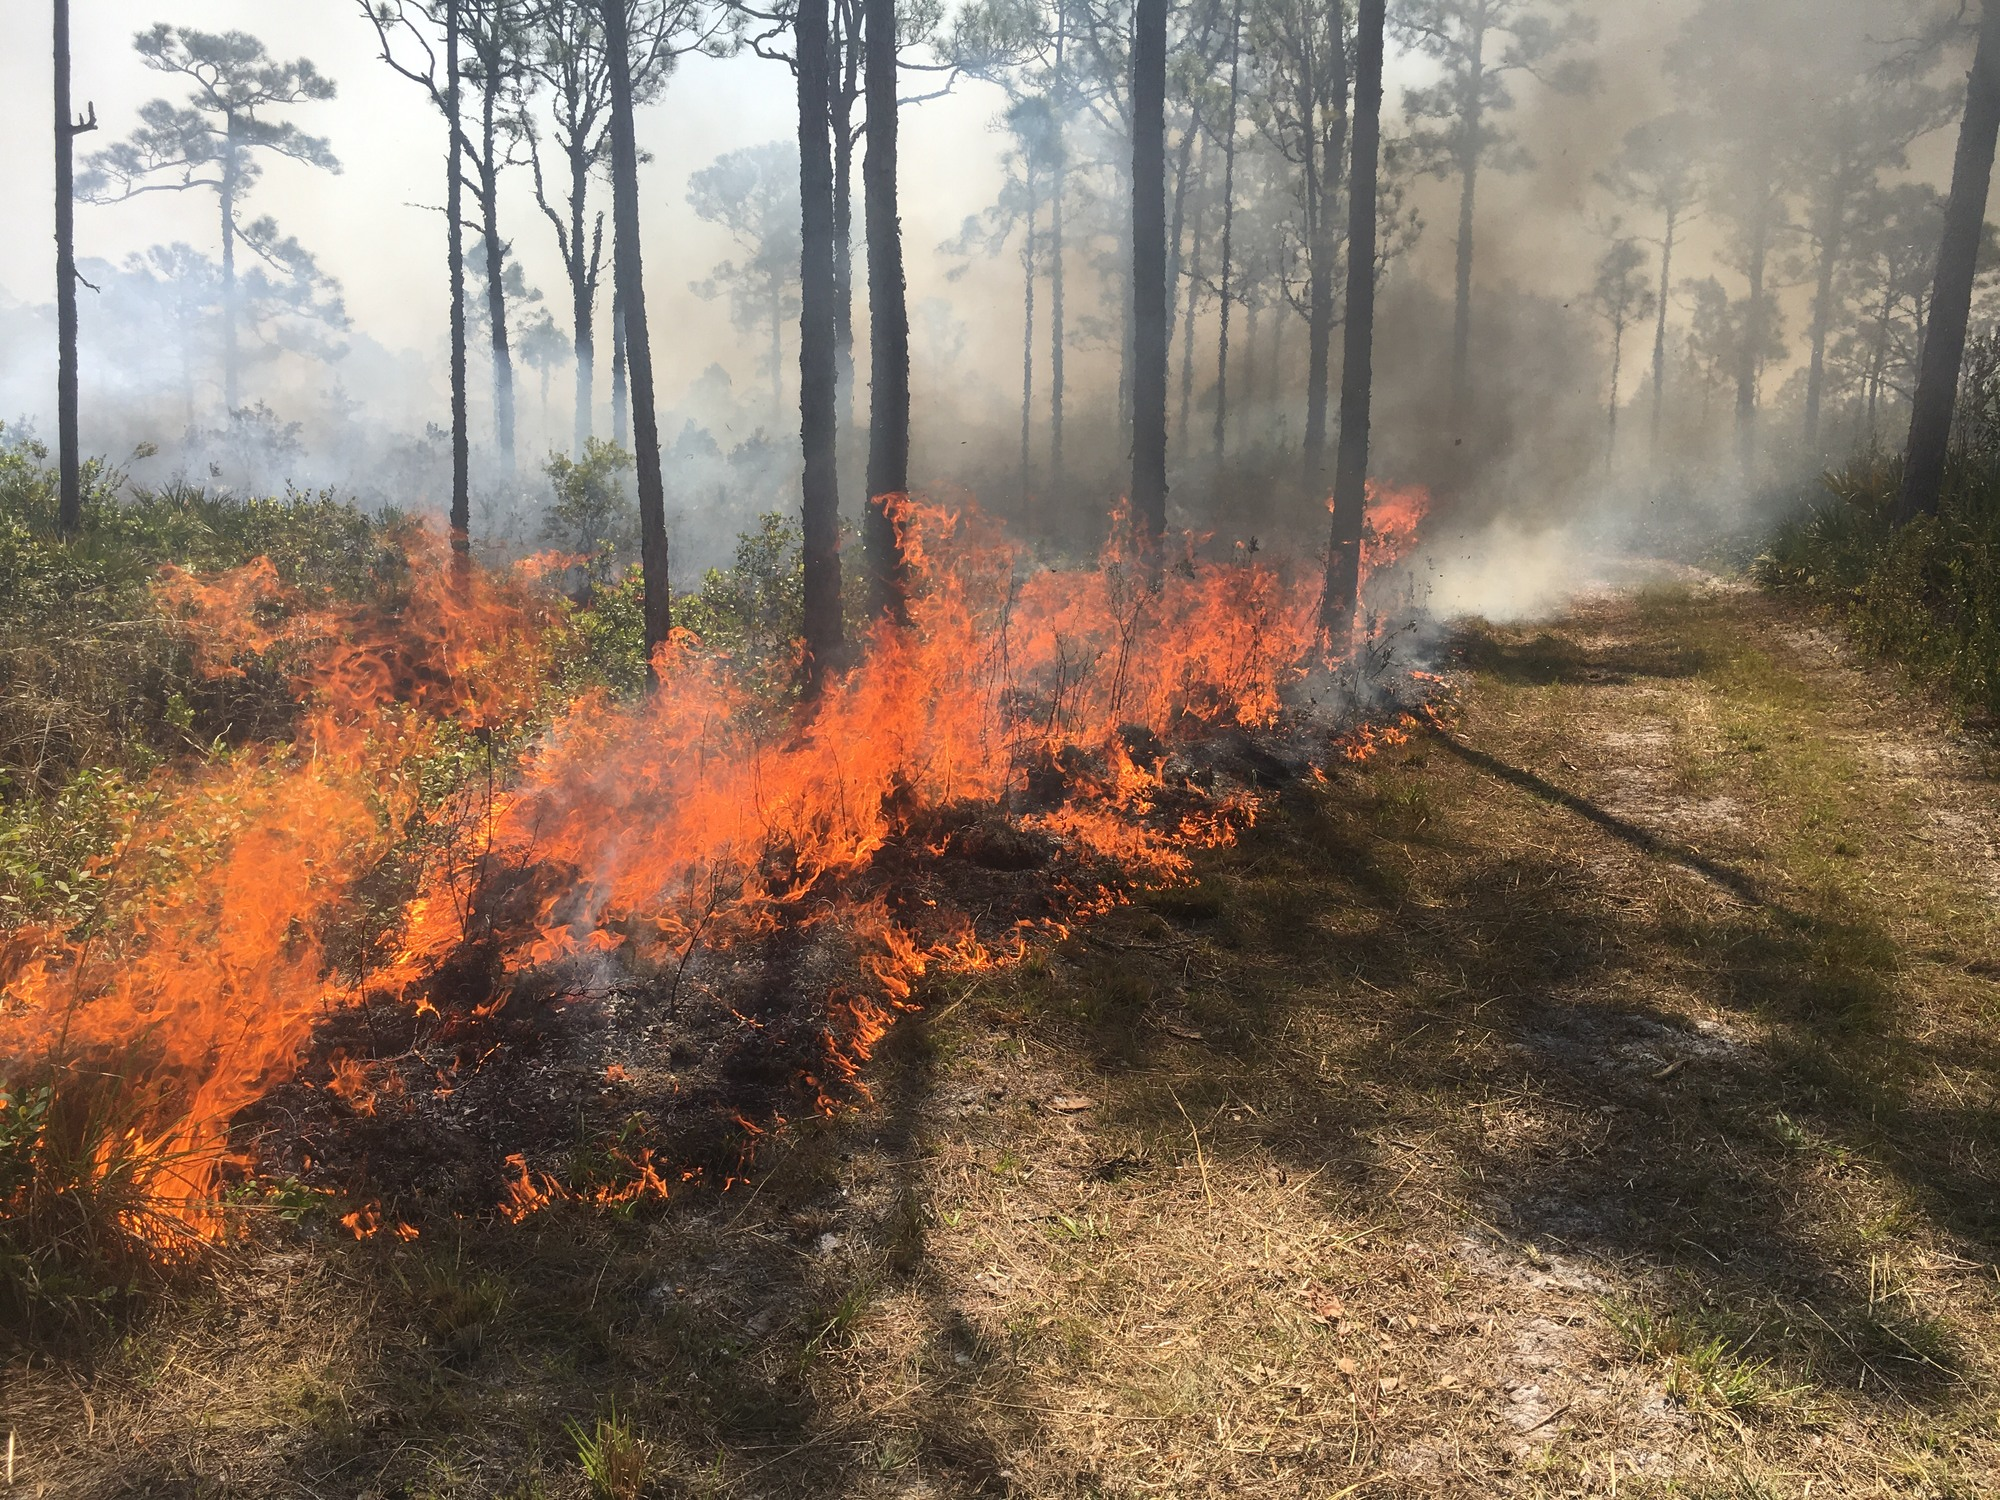 A prescribed fire burning at Jonathan Dickinson State Park